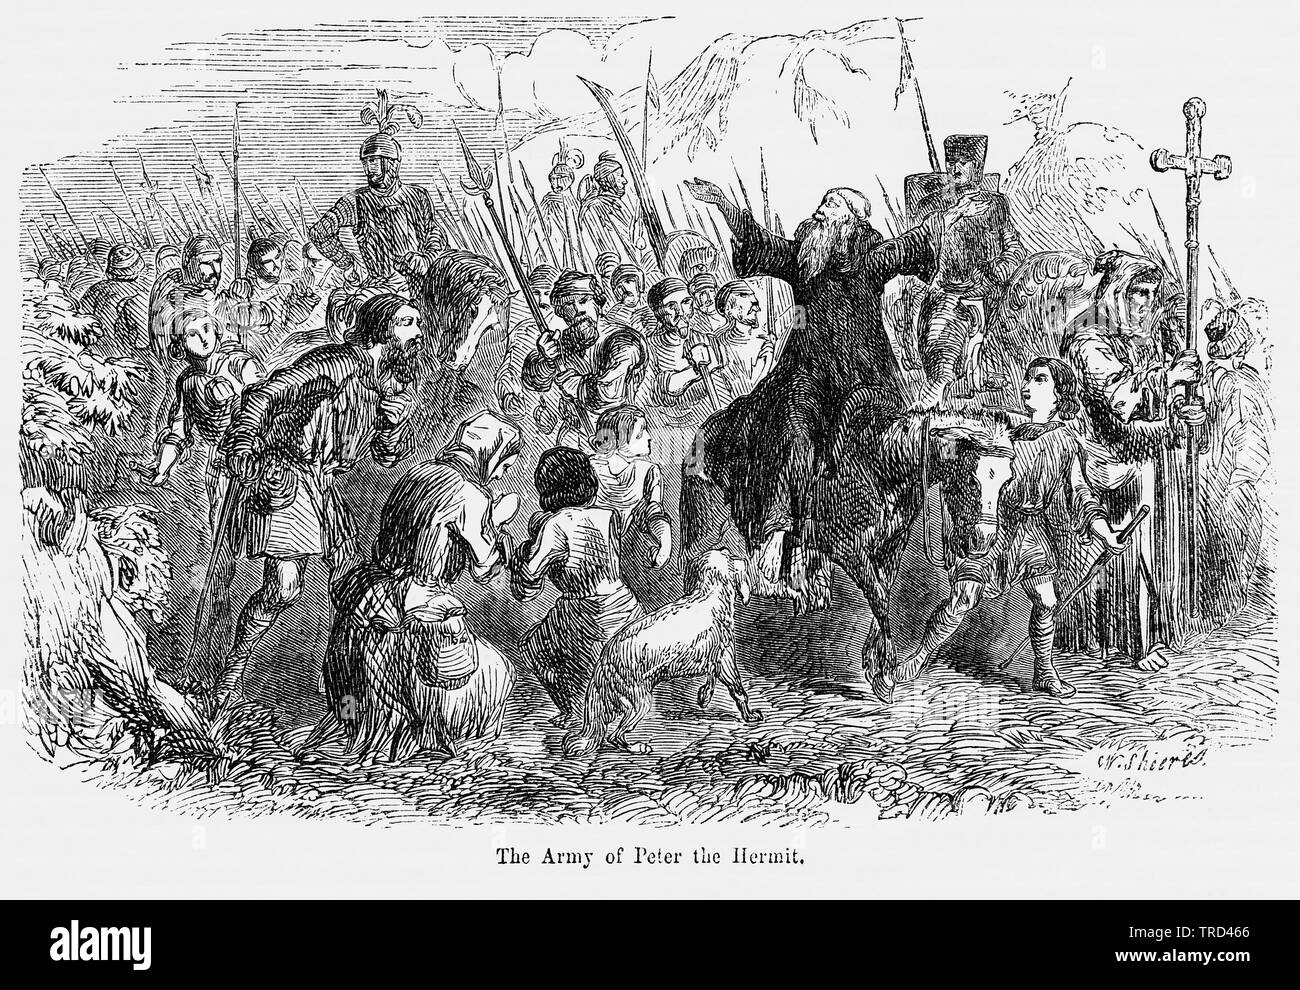 The Army of Peter the Hermit, Illustration from John Cassell's Illustrated History of England, Vol. I from the earliest period to the reign of Edward the Fourth, Cassell, Petter and Galpin, 1857 - Stock Image